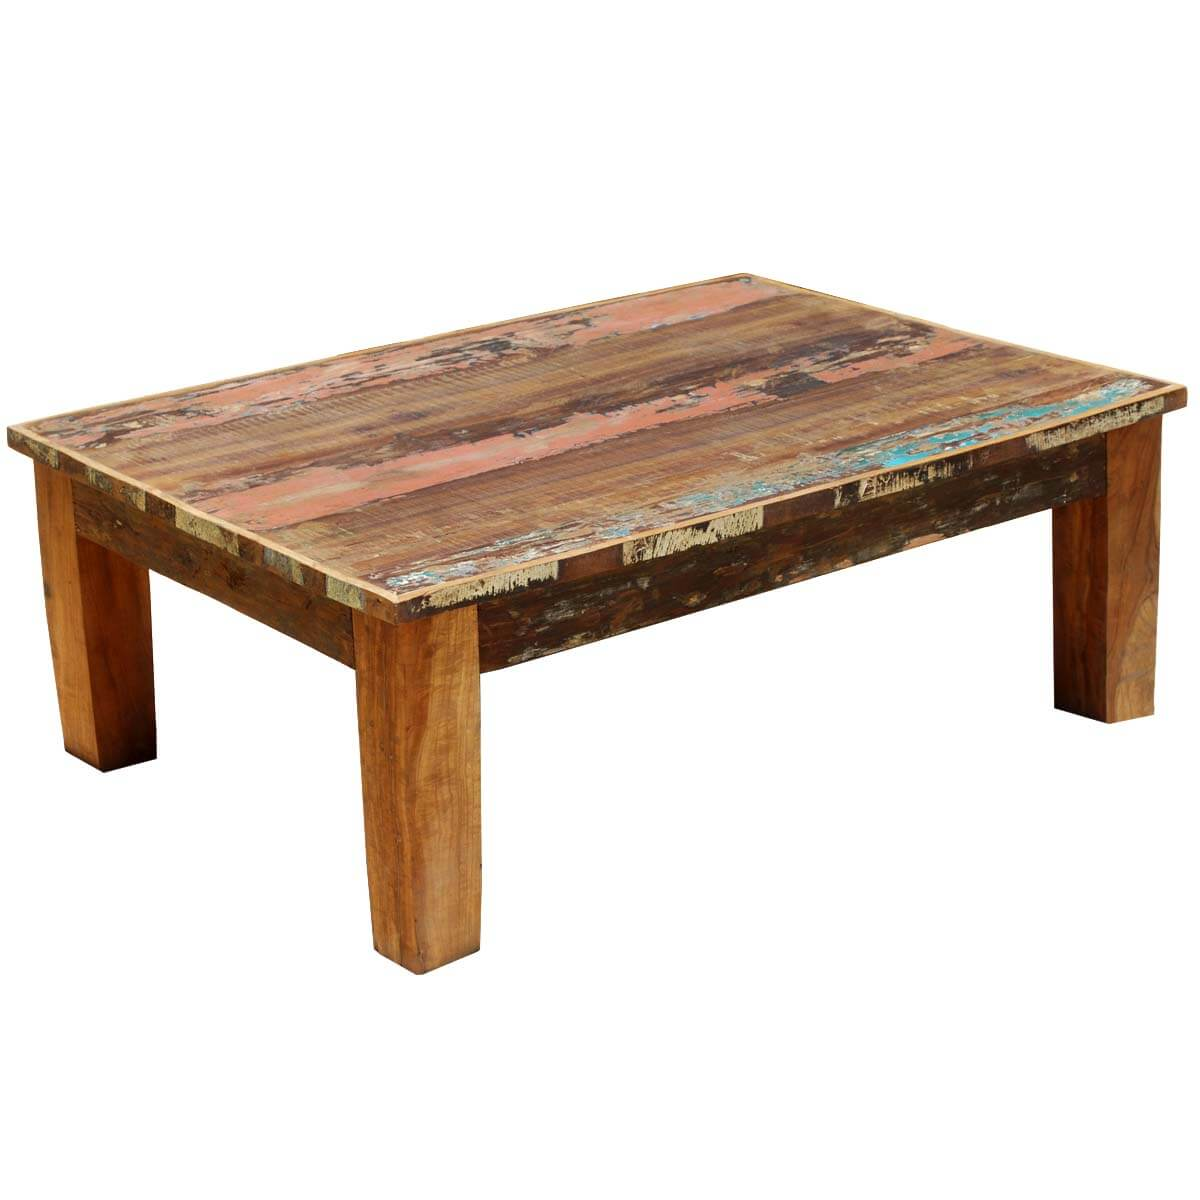 Reclaimed Teak Wood Coffee Table Appalachian Rustic Mixed Reclaimed Wood Coffee Table